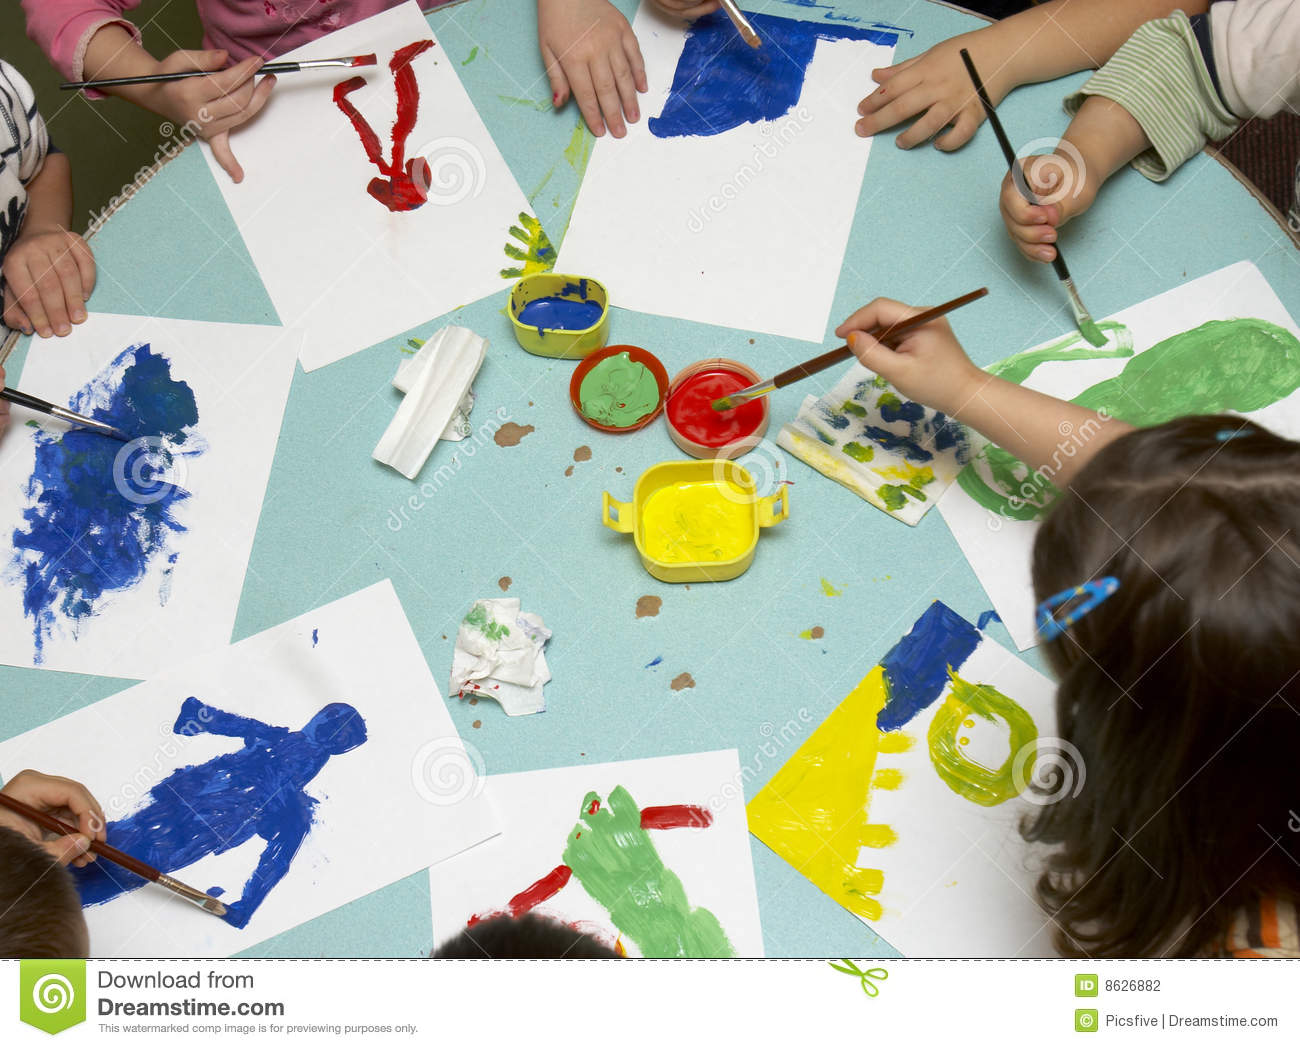 children painting - Children Painting Images